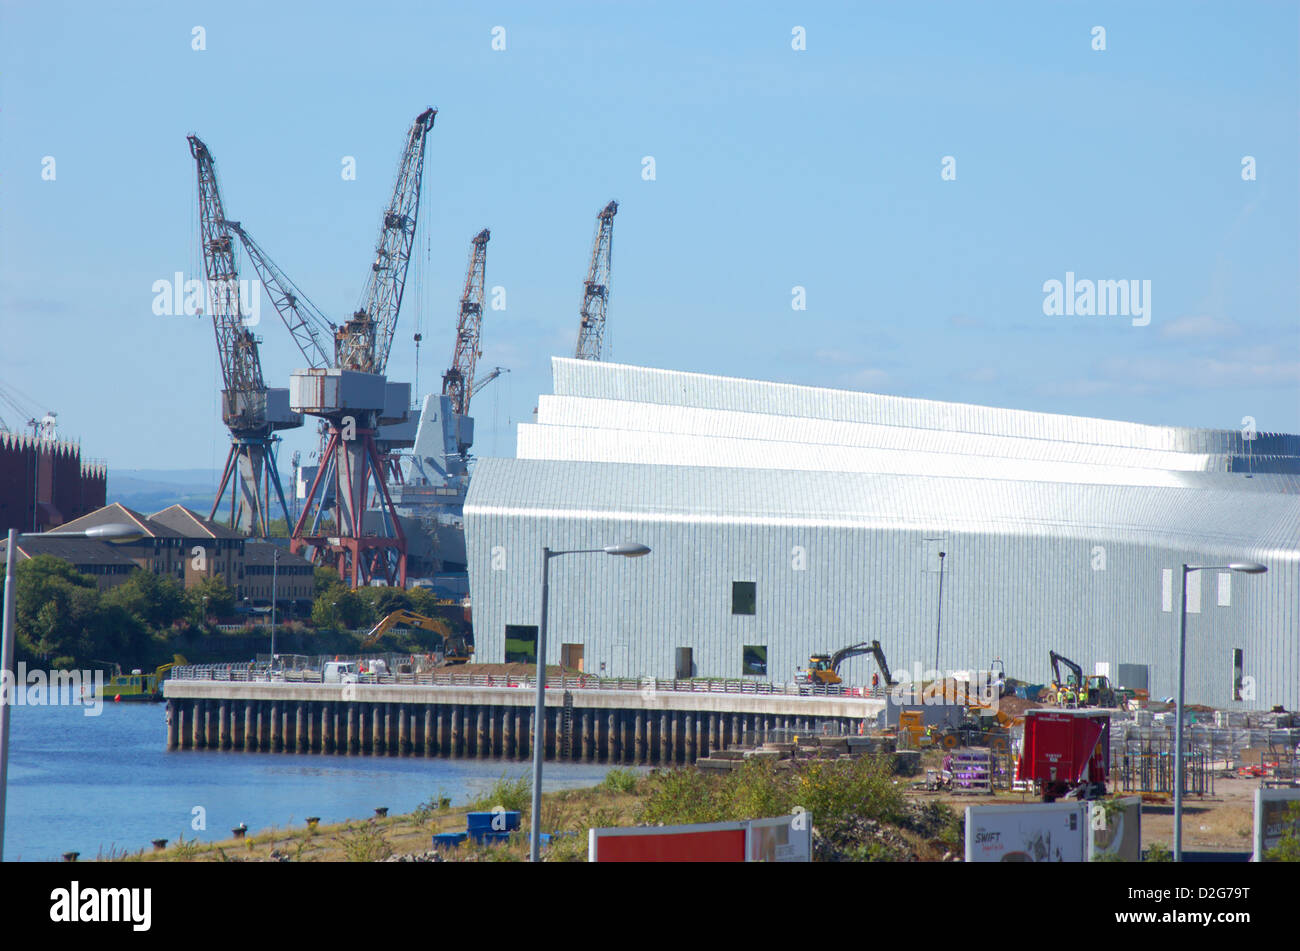 New transport museum building and cranes at Govan shipyard in Glasgow, Scotland - Stock Image